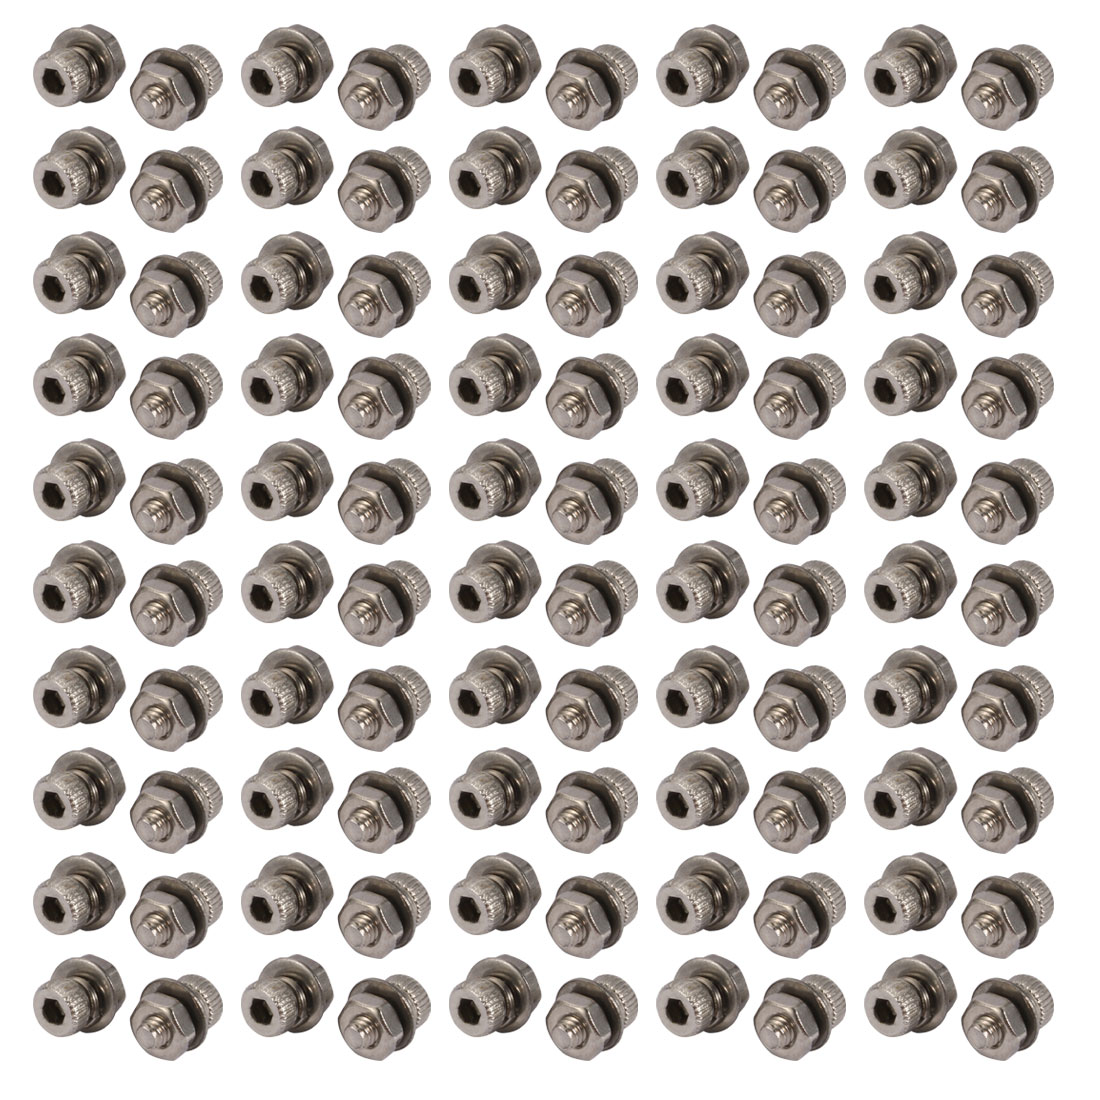 100pcs M2x4mm 304 Stainless Steel Knurled Hex Socket Head Bolts w Nut Washer